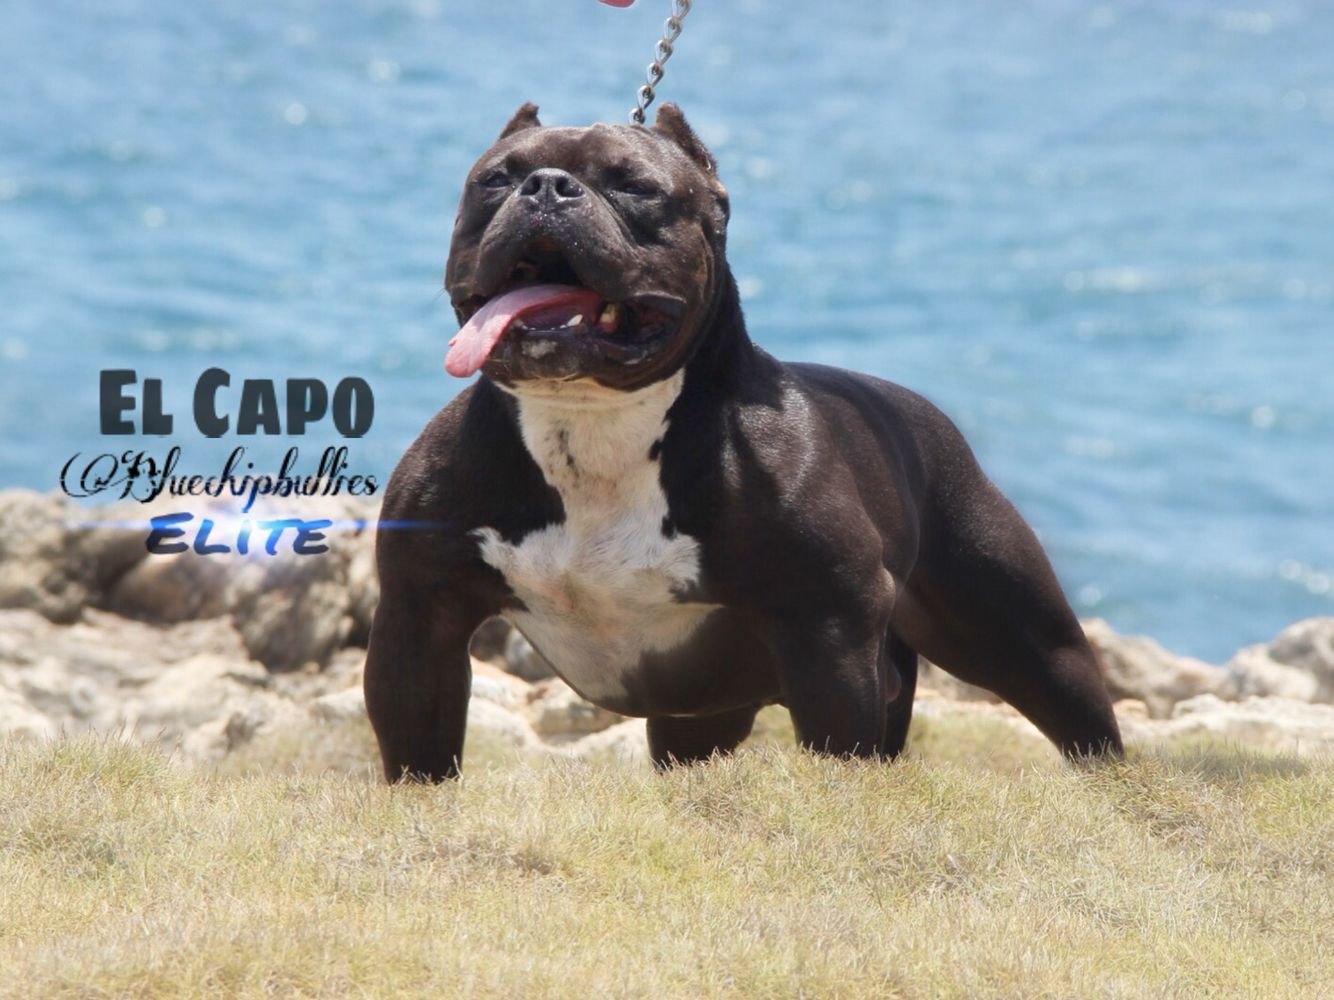 El Capo Line Bully Dog Bully Breeds Dogs American Bully